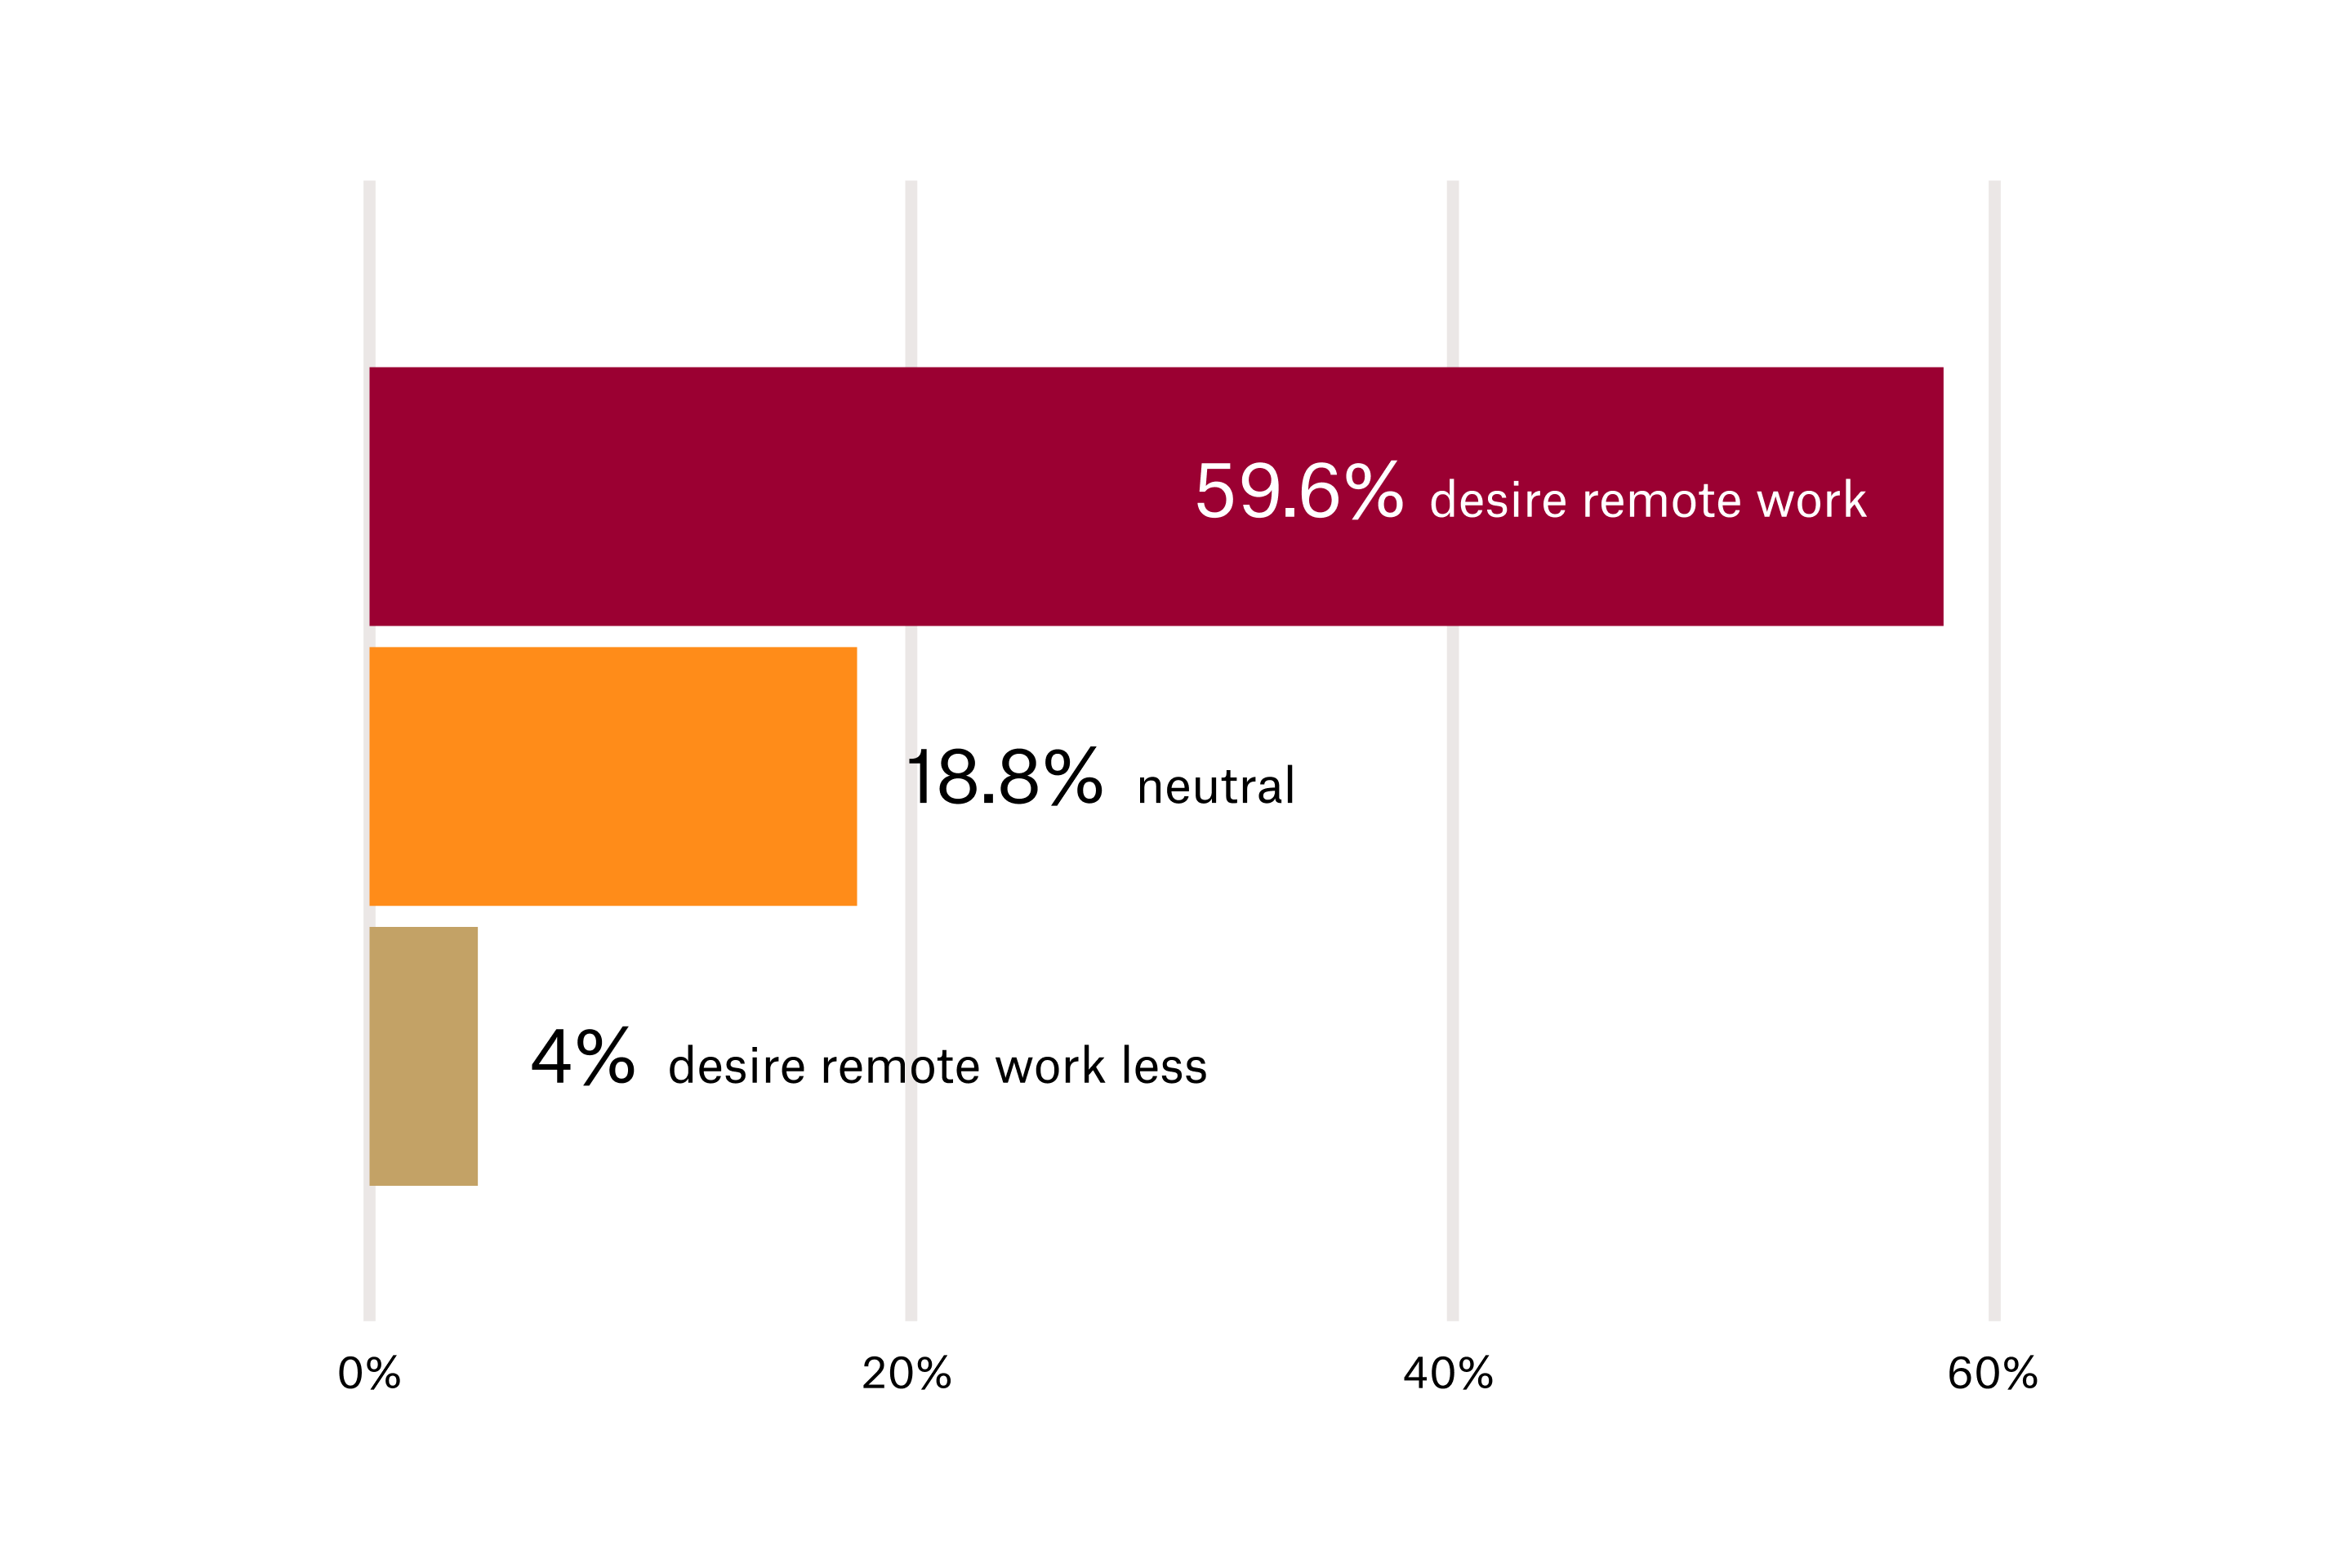 A graph showing that 60% of employees want to work remotely where possible